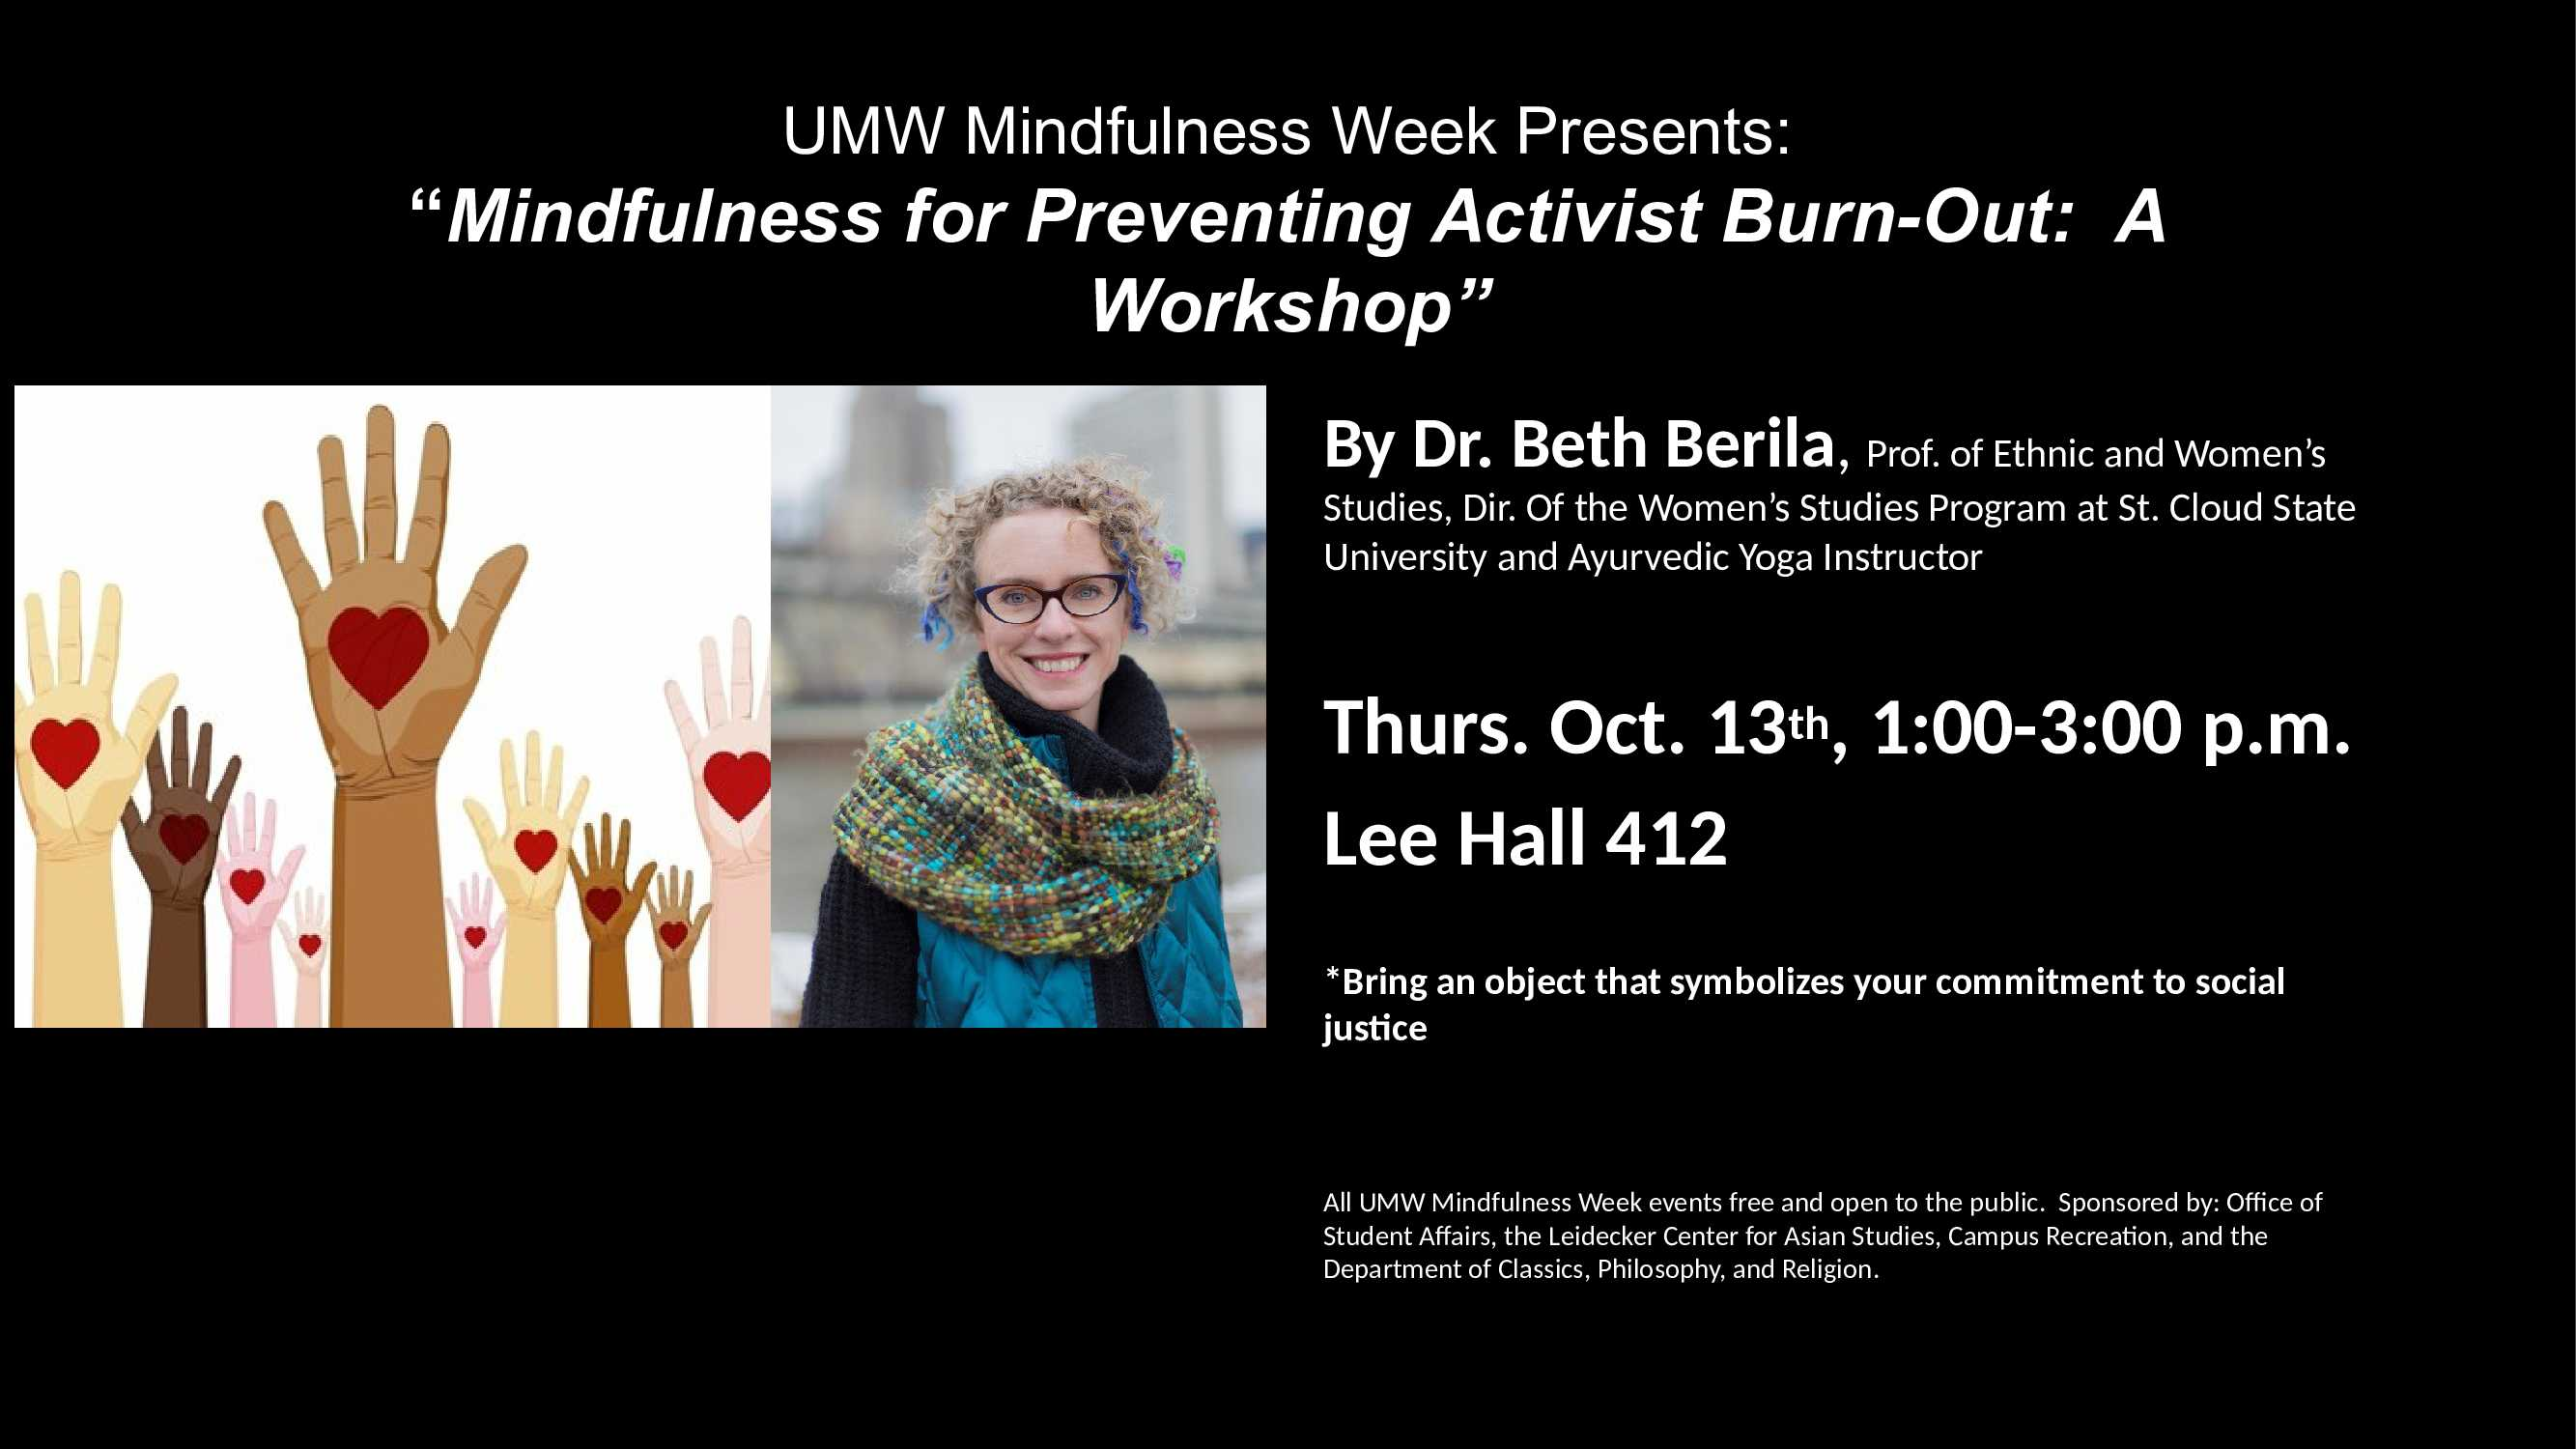 Information regarding Preventing Activist Burn-Out: A Workshop is as follows Create Your Own Tag: is #MIndfulnessWeek and Start date is September 23 2016 and End Date is October 14 2016 and Name is Angela Pitts and Email is apitts2@umw.edu and File is Browse and Affiliation is Department and Group Name is Dept. of Classics, Philosophy, and Religion and File Name is preventing-burnout_comp.jpg and Panel is Main and Name of Ad/Event is Preventing Activist Burn-Out: A Workshop and